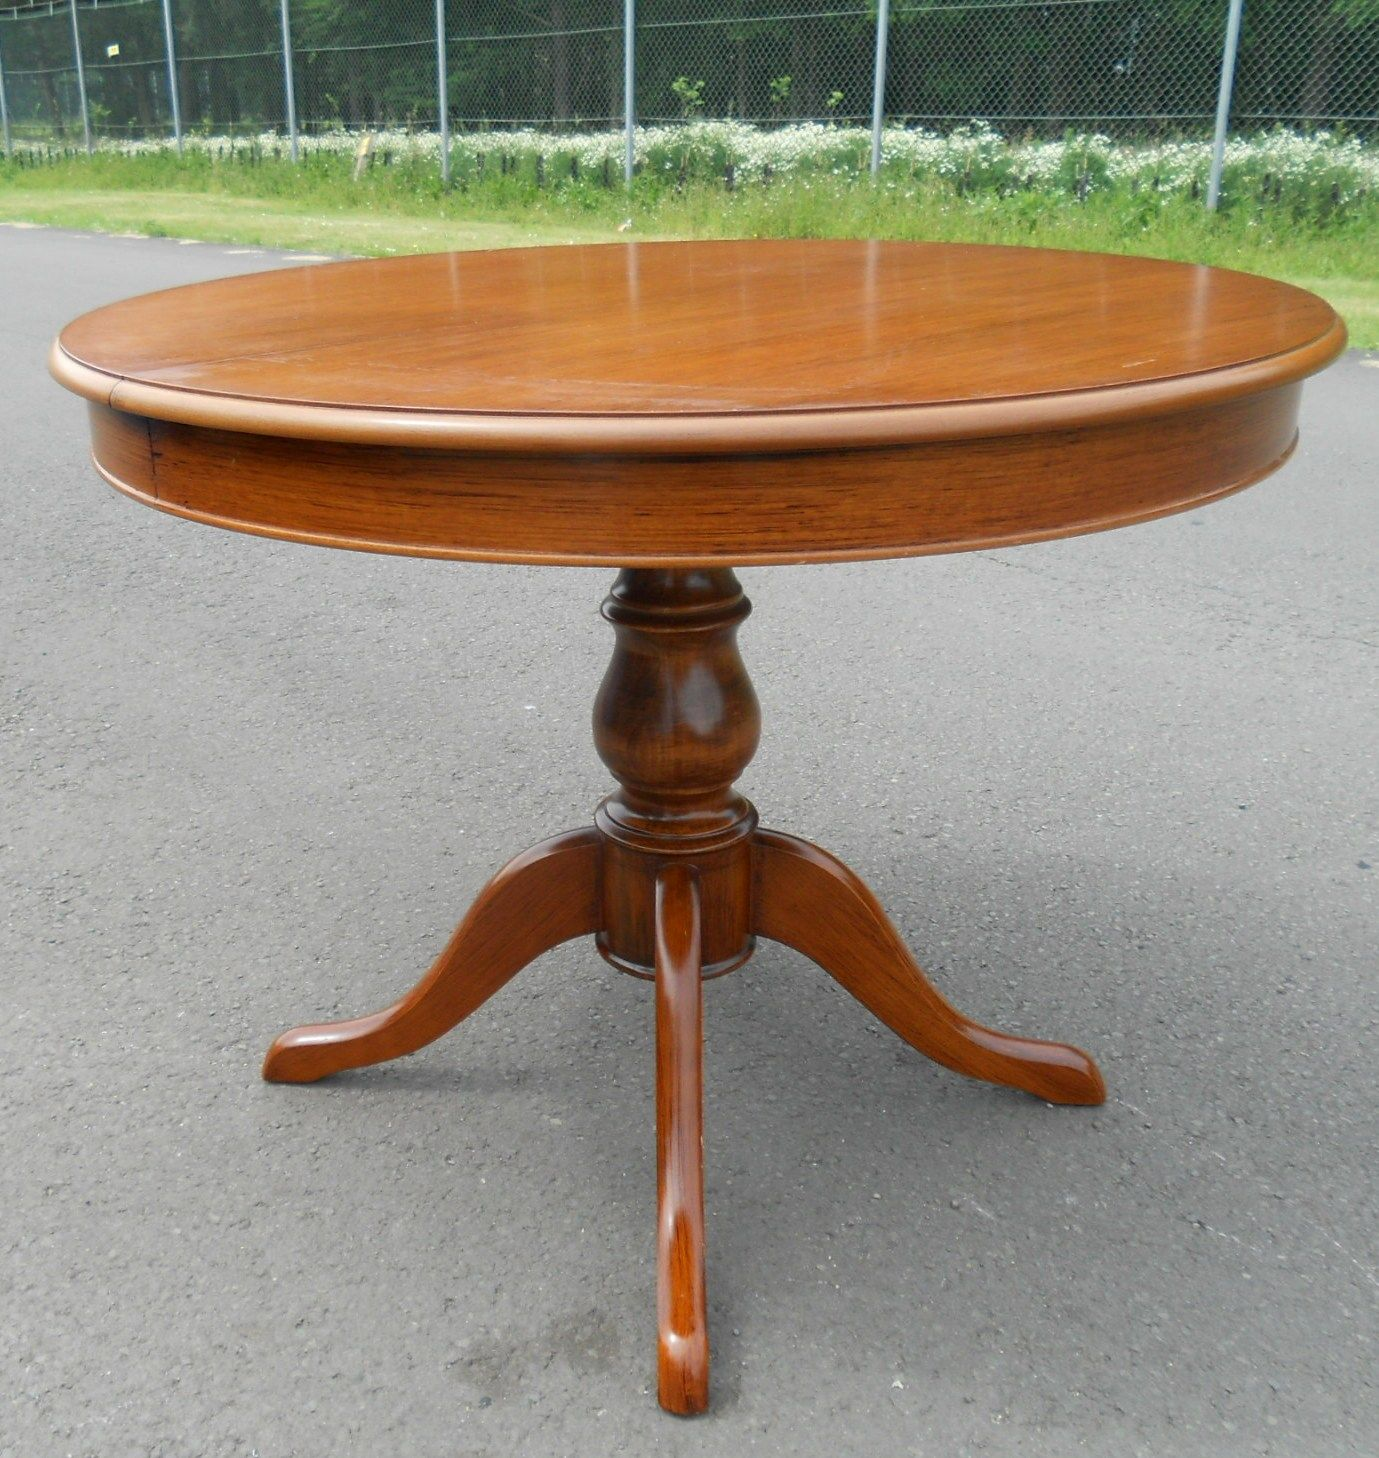 Sold victorian style round mahogany pedestal dining for Round dining table for 6